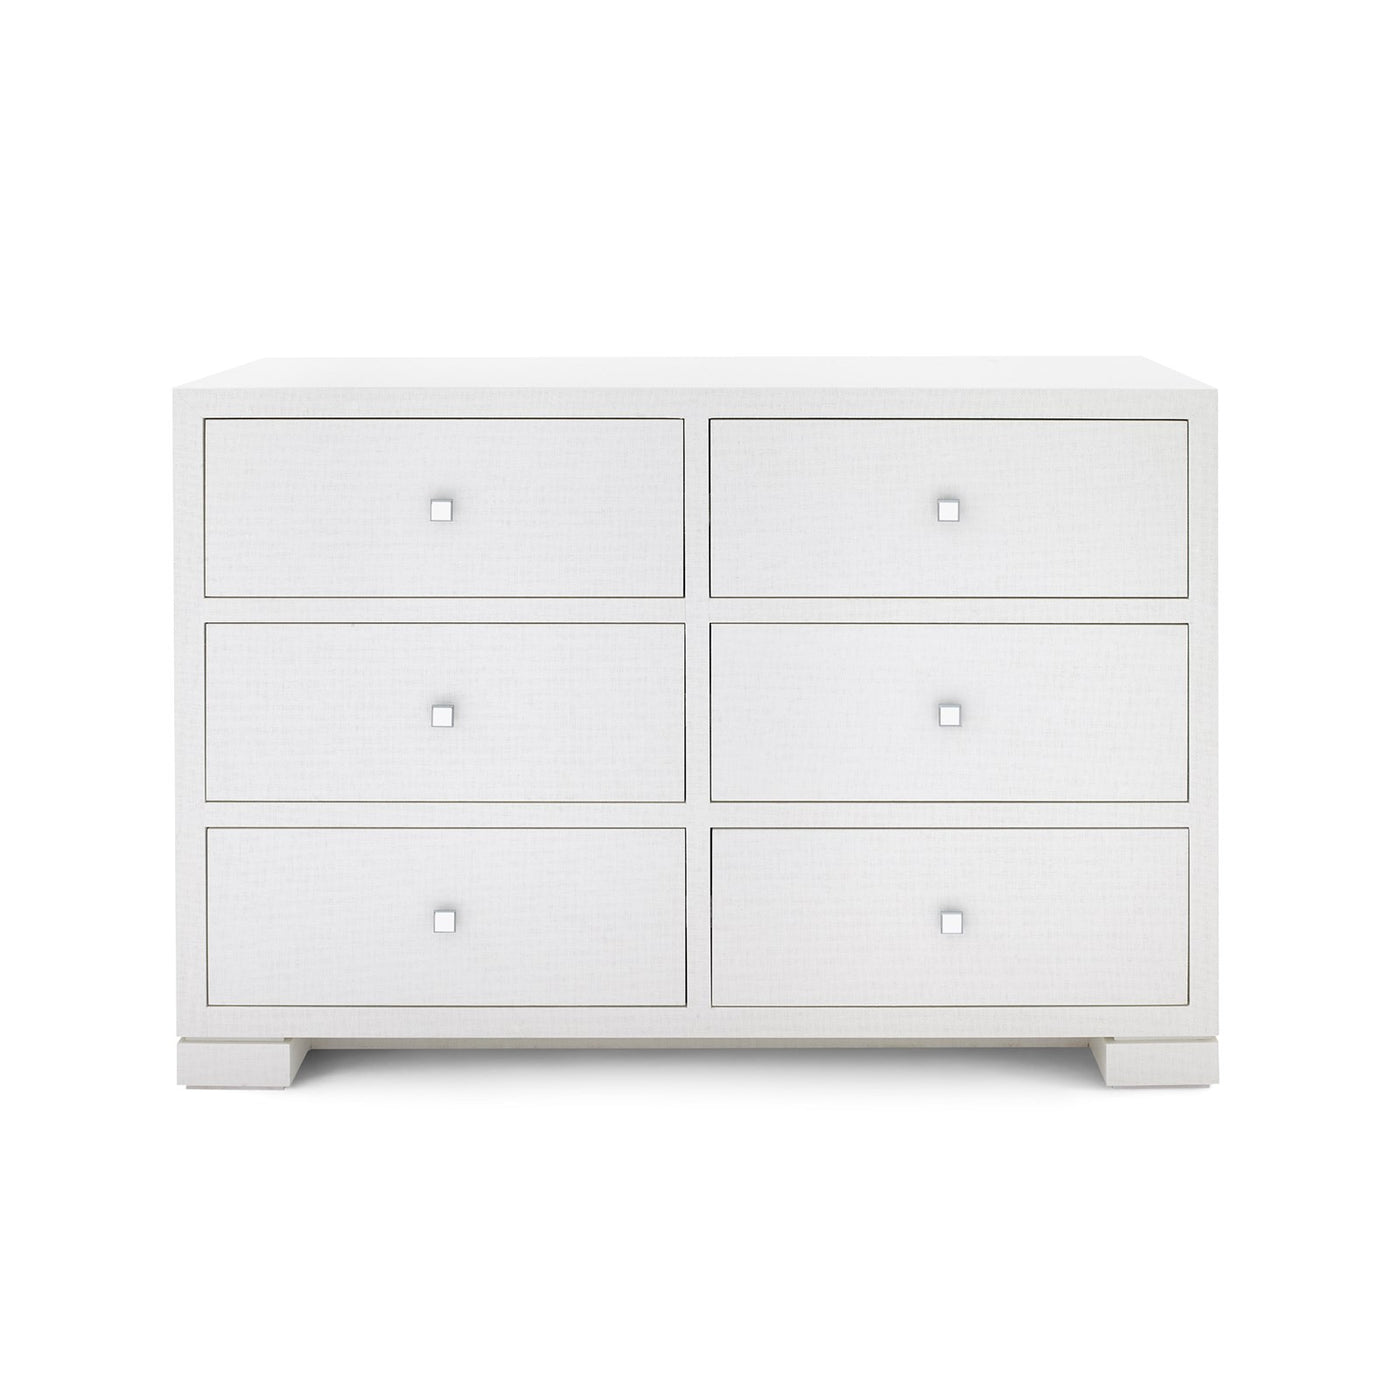 Bungalow 5 Frances Extra Large 6 Drawer Chest White FRA-250